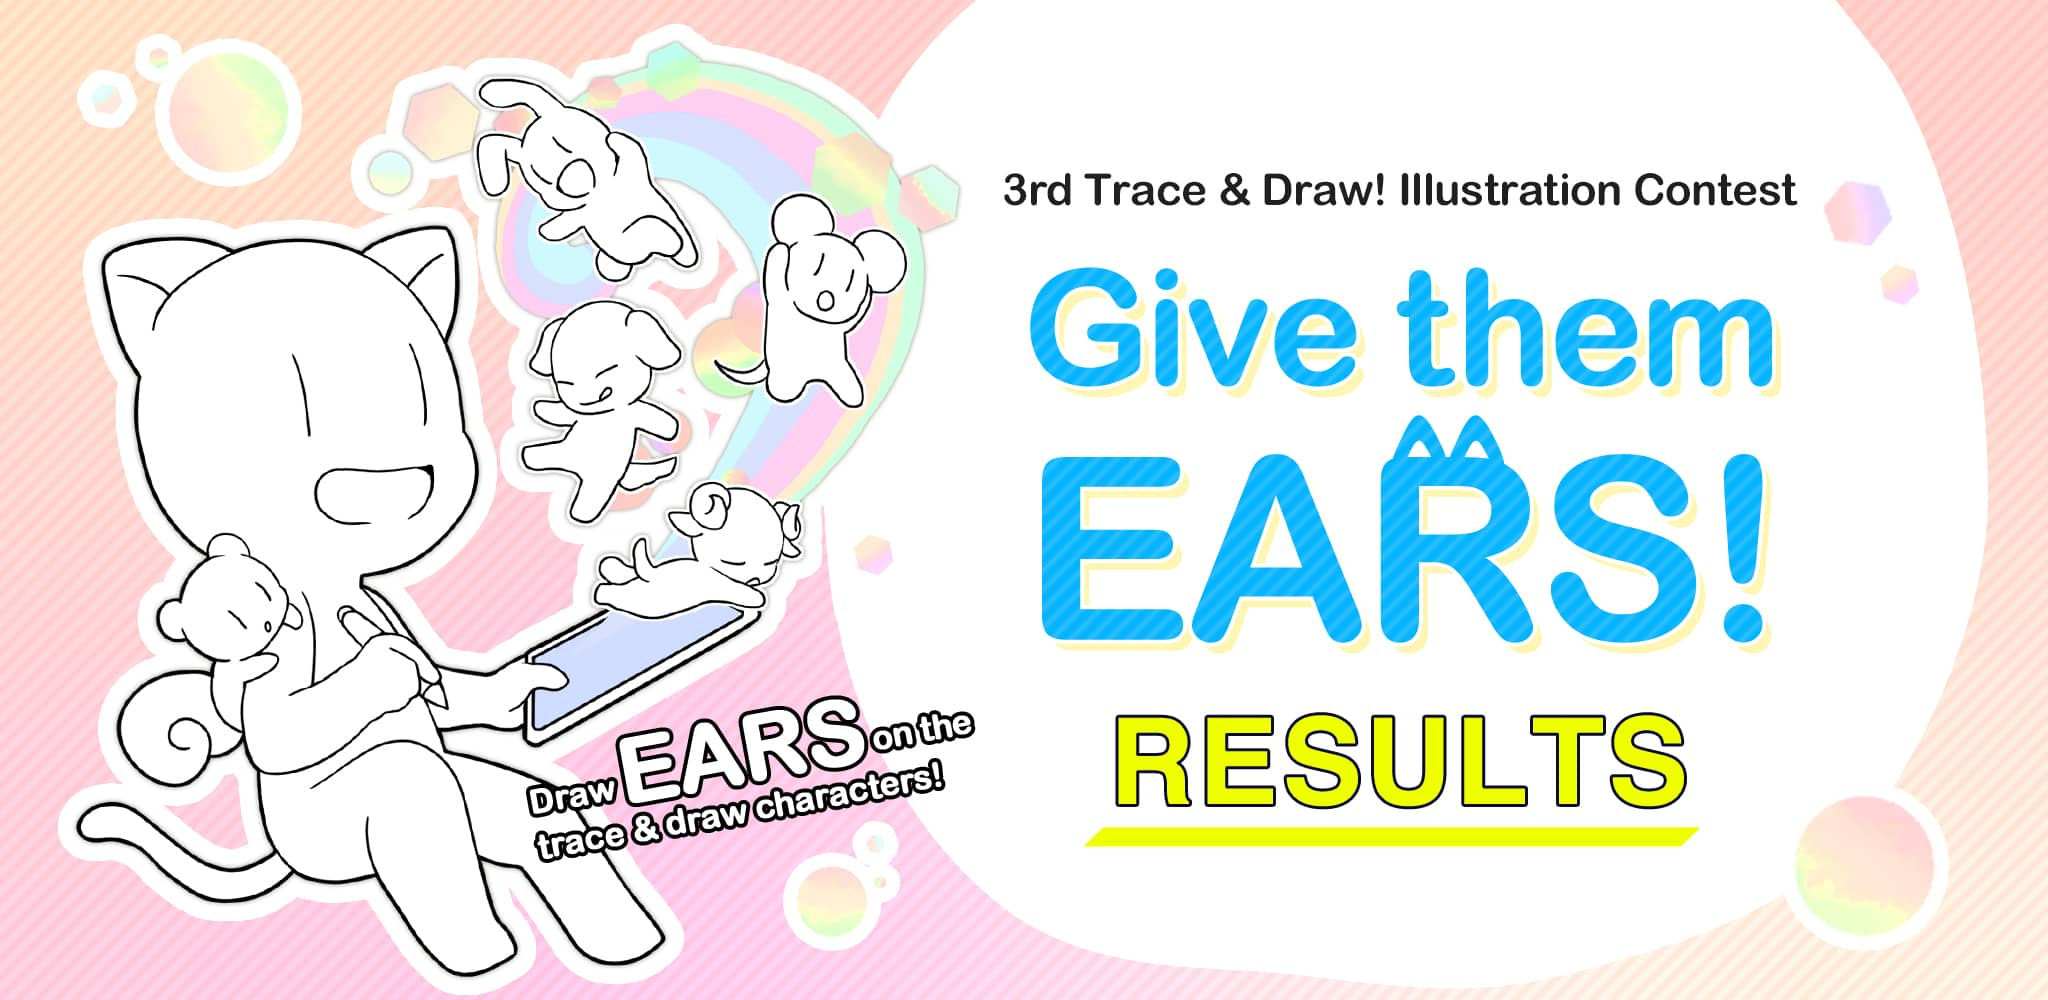 3rd Trace & Draw! Illustration Contest Results | Contest - ART street by MediBang